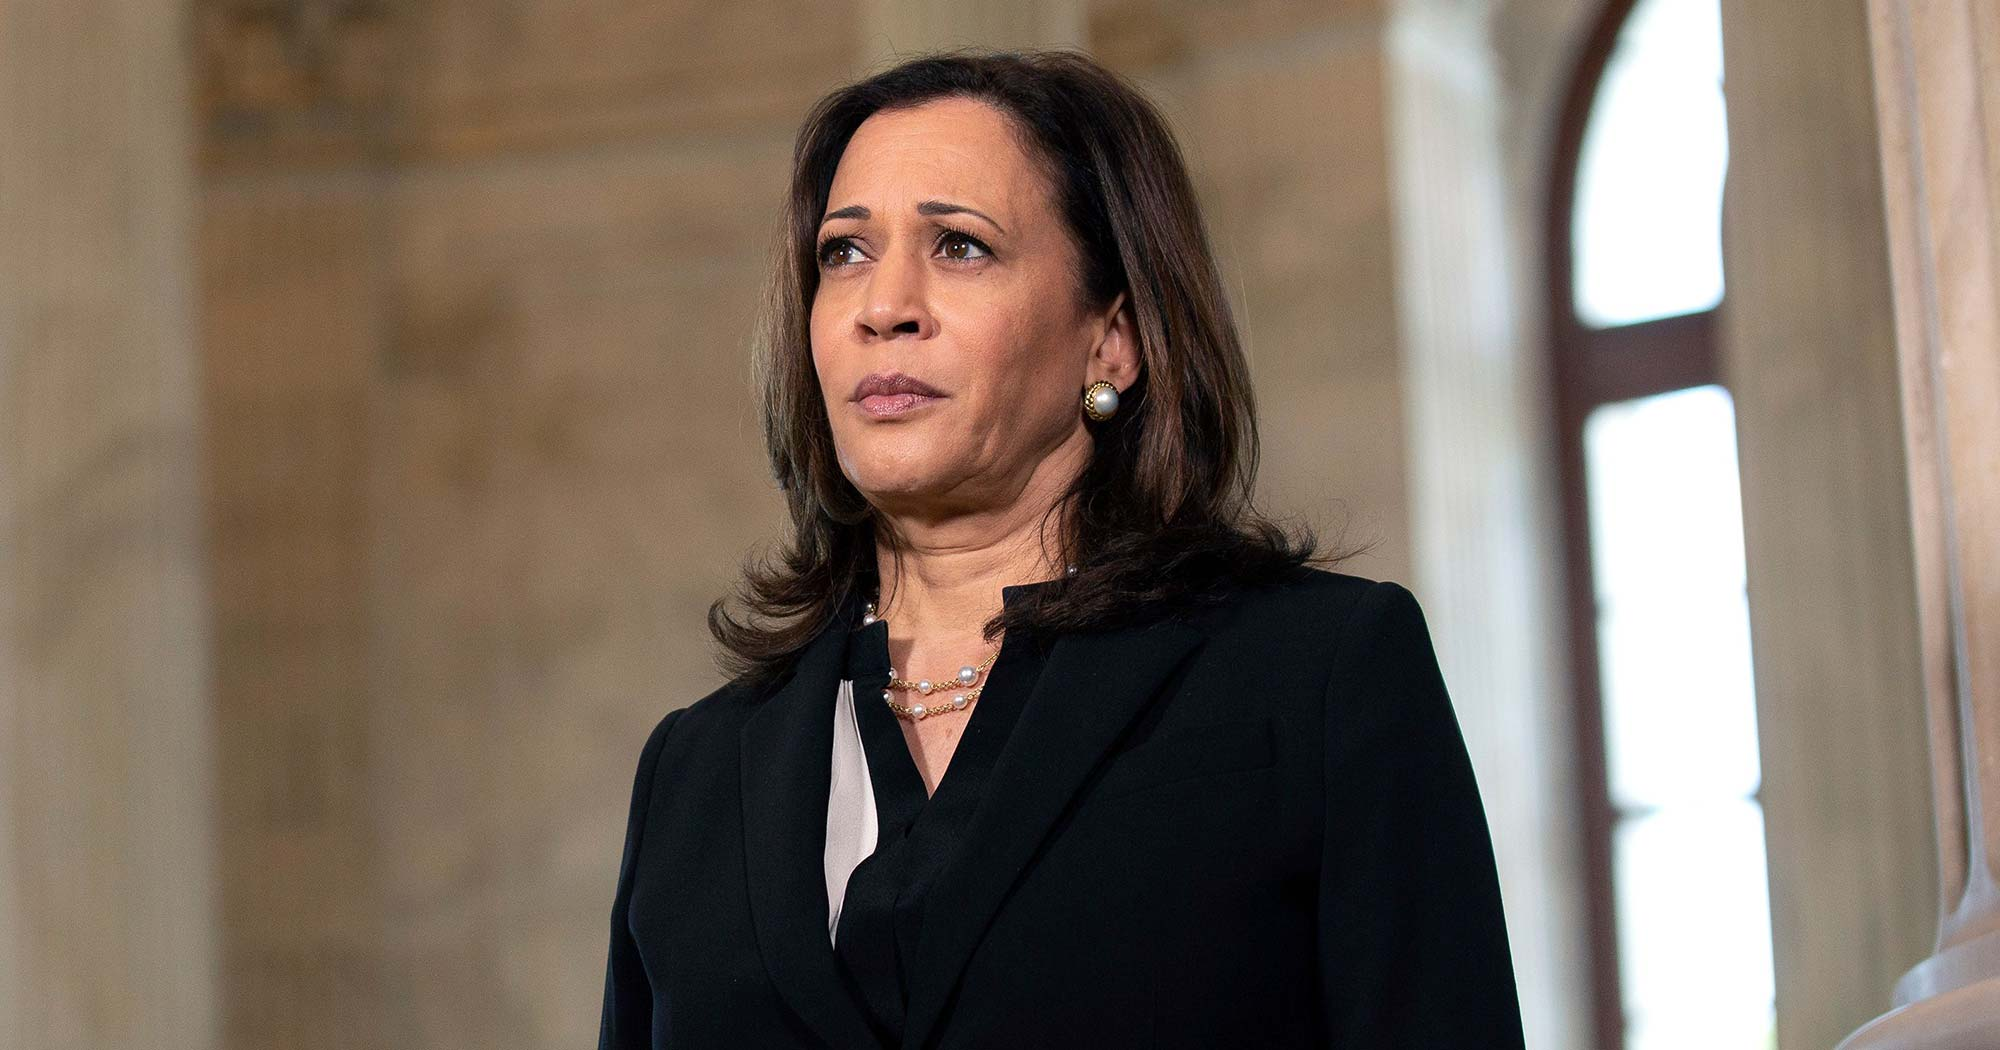 Kamala Harris Wants To Help Women With This Super-Common Health Issue